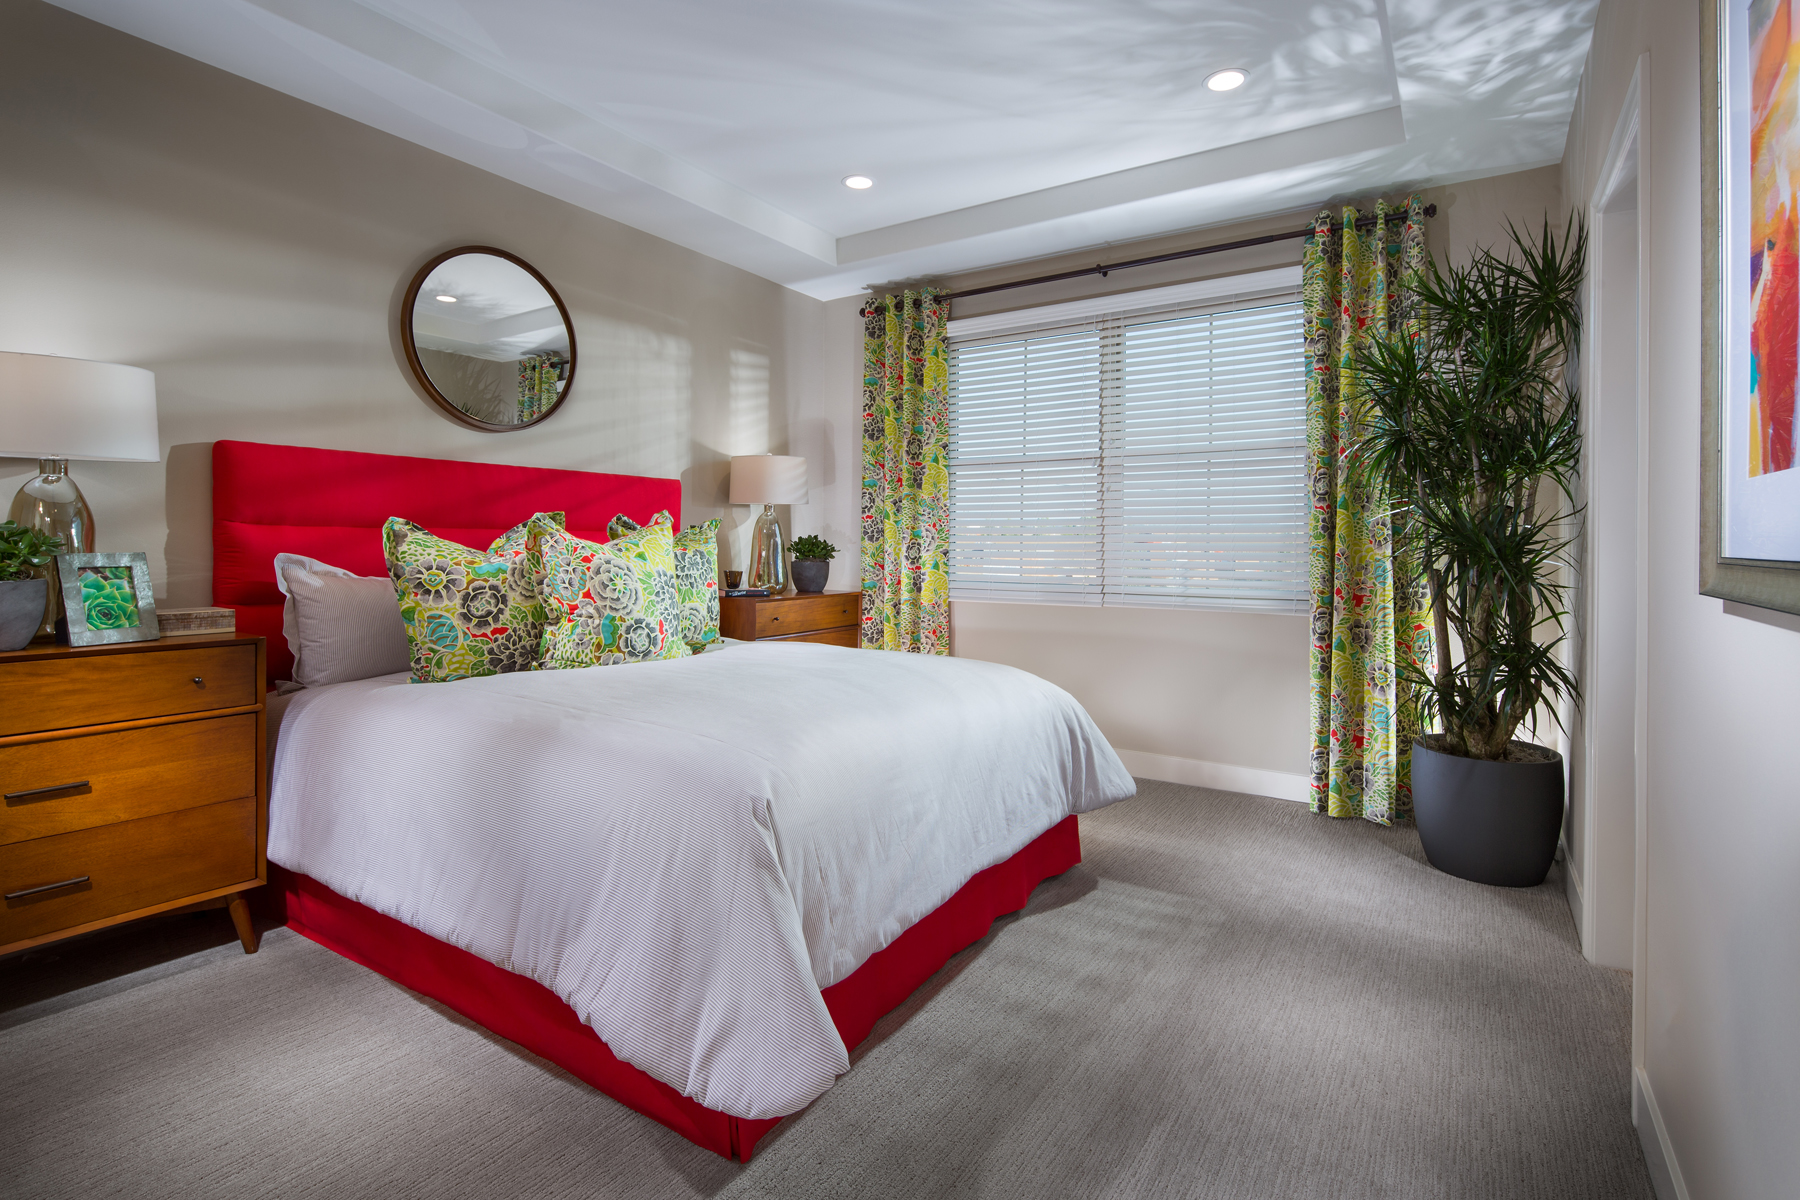 Plan 1 Master Bedroom